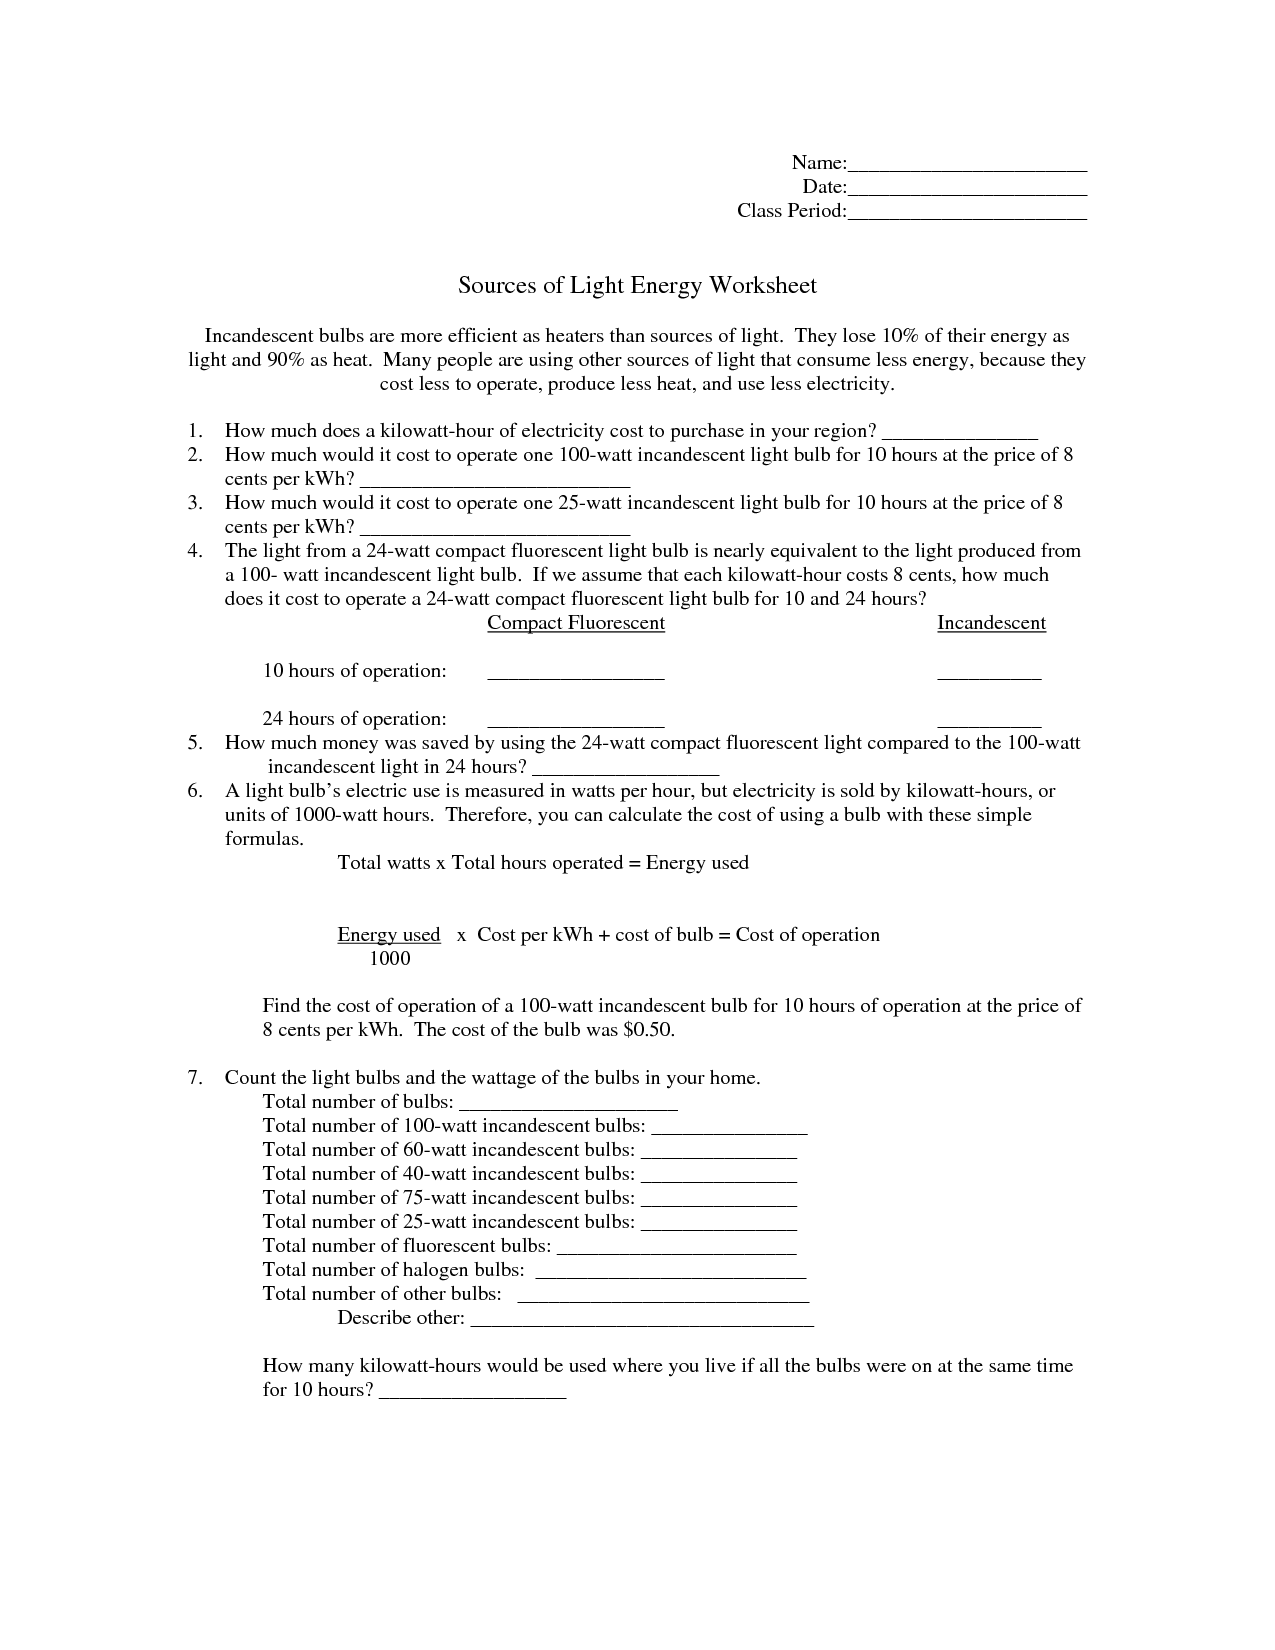 13 Best Images Of Light Energy Sources Worksheet